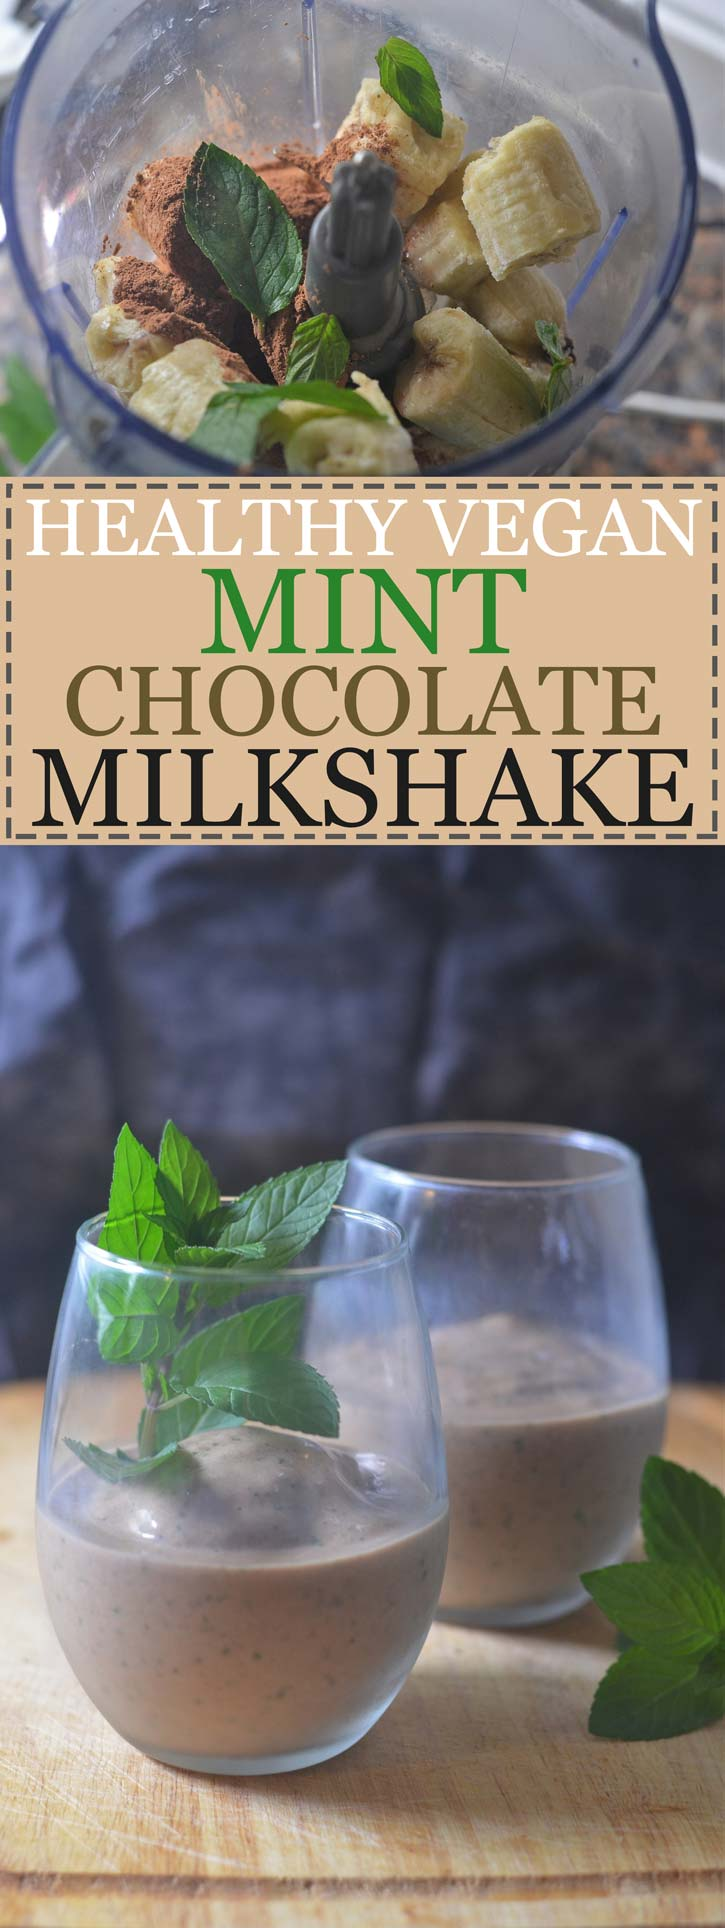 healthy vegan mint chocolate shake milkshake